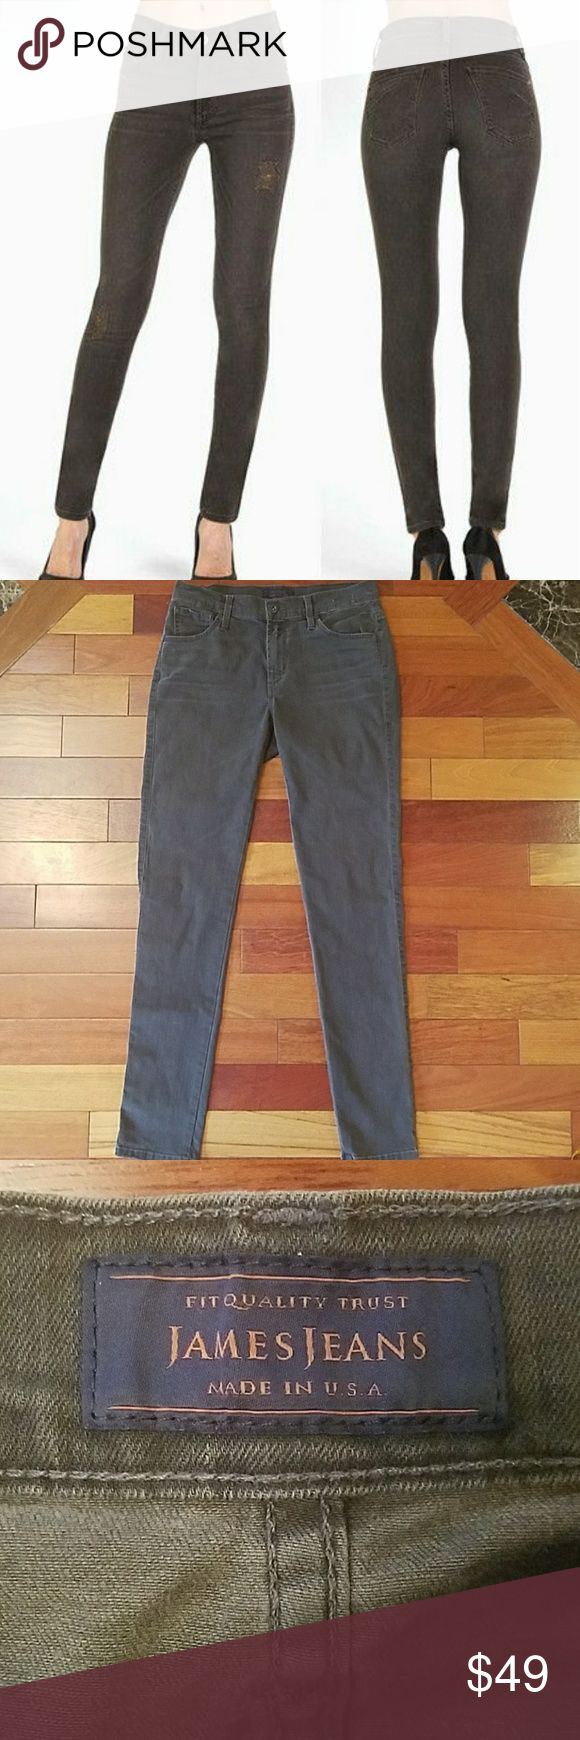 """James Jeans Twiggy Skinny Jeans James Jeans Twiggy Skinny Jeans in Kenwood wash.  Size 28.  Gray wash skinny jeans that will be so versatile in your wardrobe! 91.5% cotton, 6% polyester, 2.5% spandex. 14.75"""" across the waist.  9.5"""" rise.  31"""" inseam. James Jeans Jeans Skinny"""